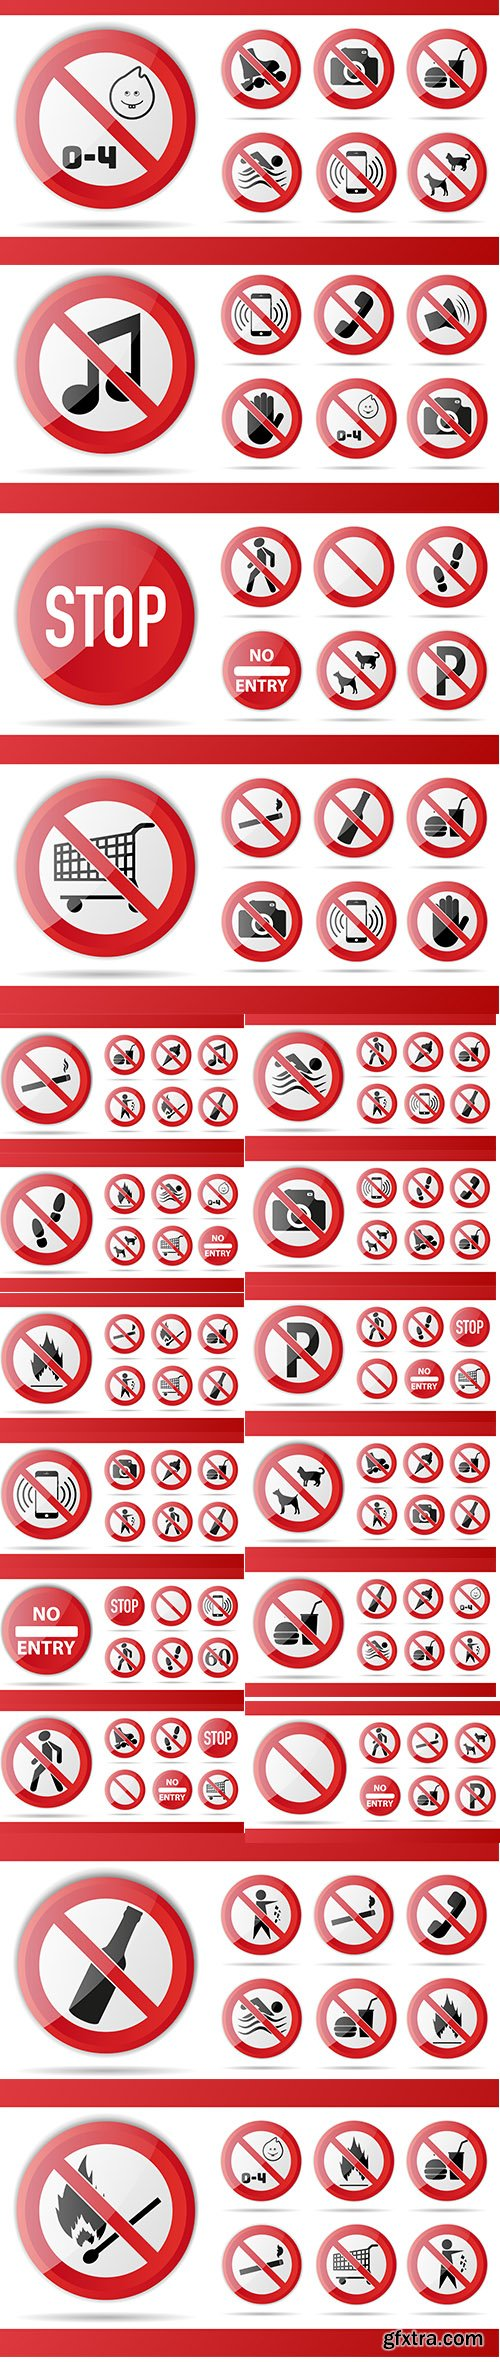 Set of Red Prohibition Sign Object